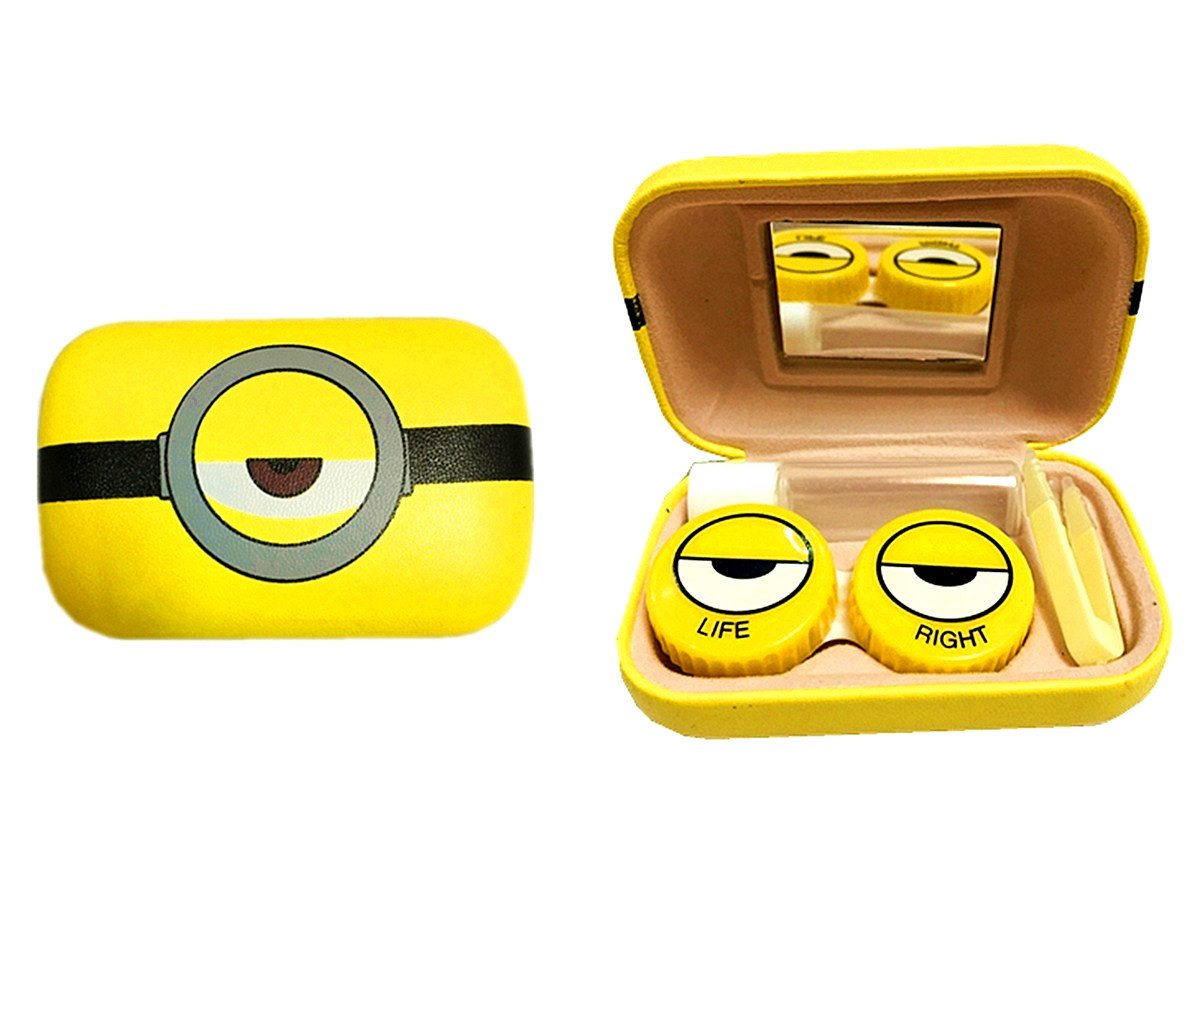 Minions Contact Lens Case | Great For Travel+Mini& Cute& Convinient (random pettern) Generic